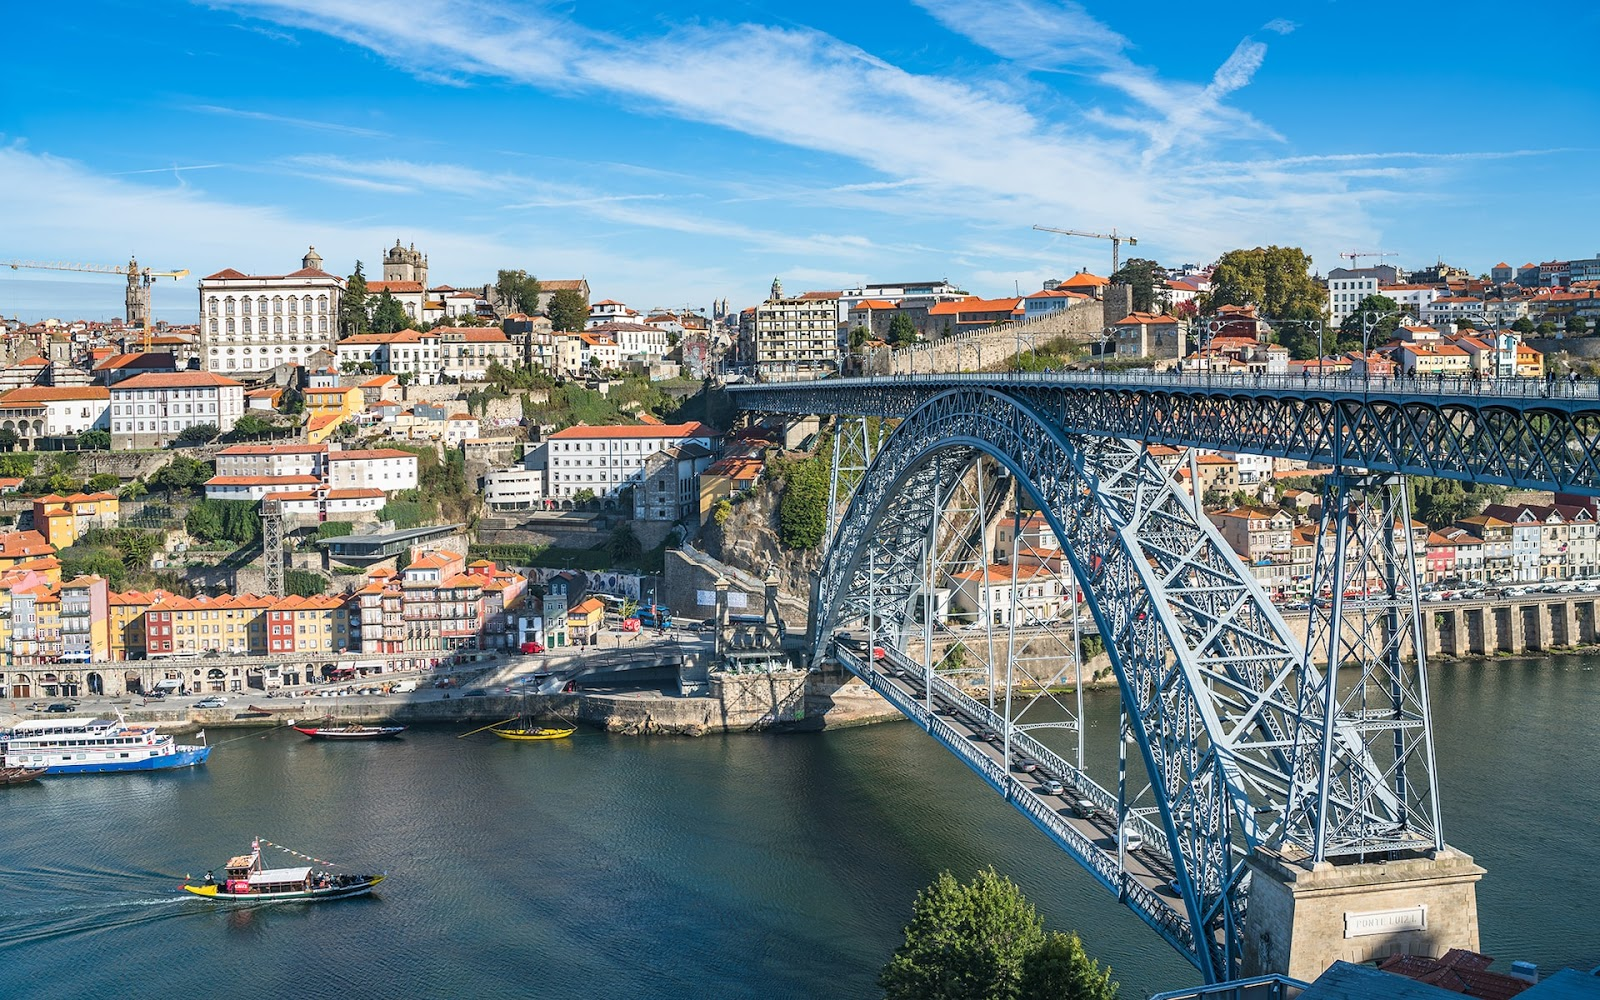 https://www.telegraph.co.uk/travel/destinations/europe/portugal/porto/articles/things-to-do-in-porto/?fbclid=IwAR0nrvtkADpvXxZItXmO1-22pKkq54D6h3kS6WCeyAqm-sCkxoL8KwFvz4s